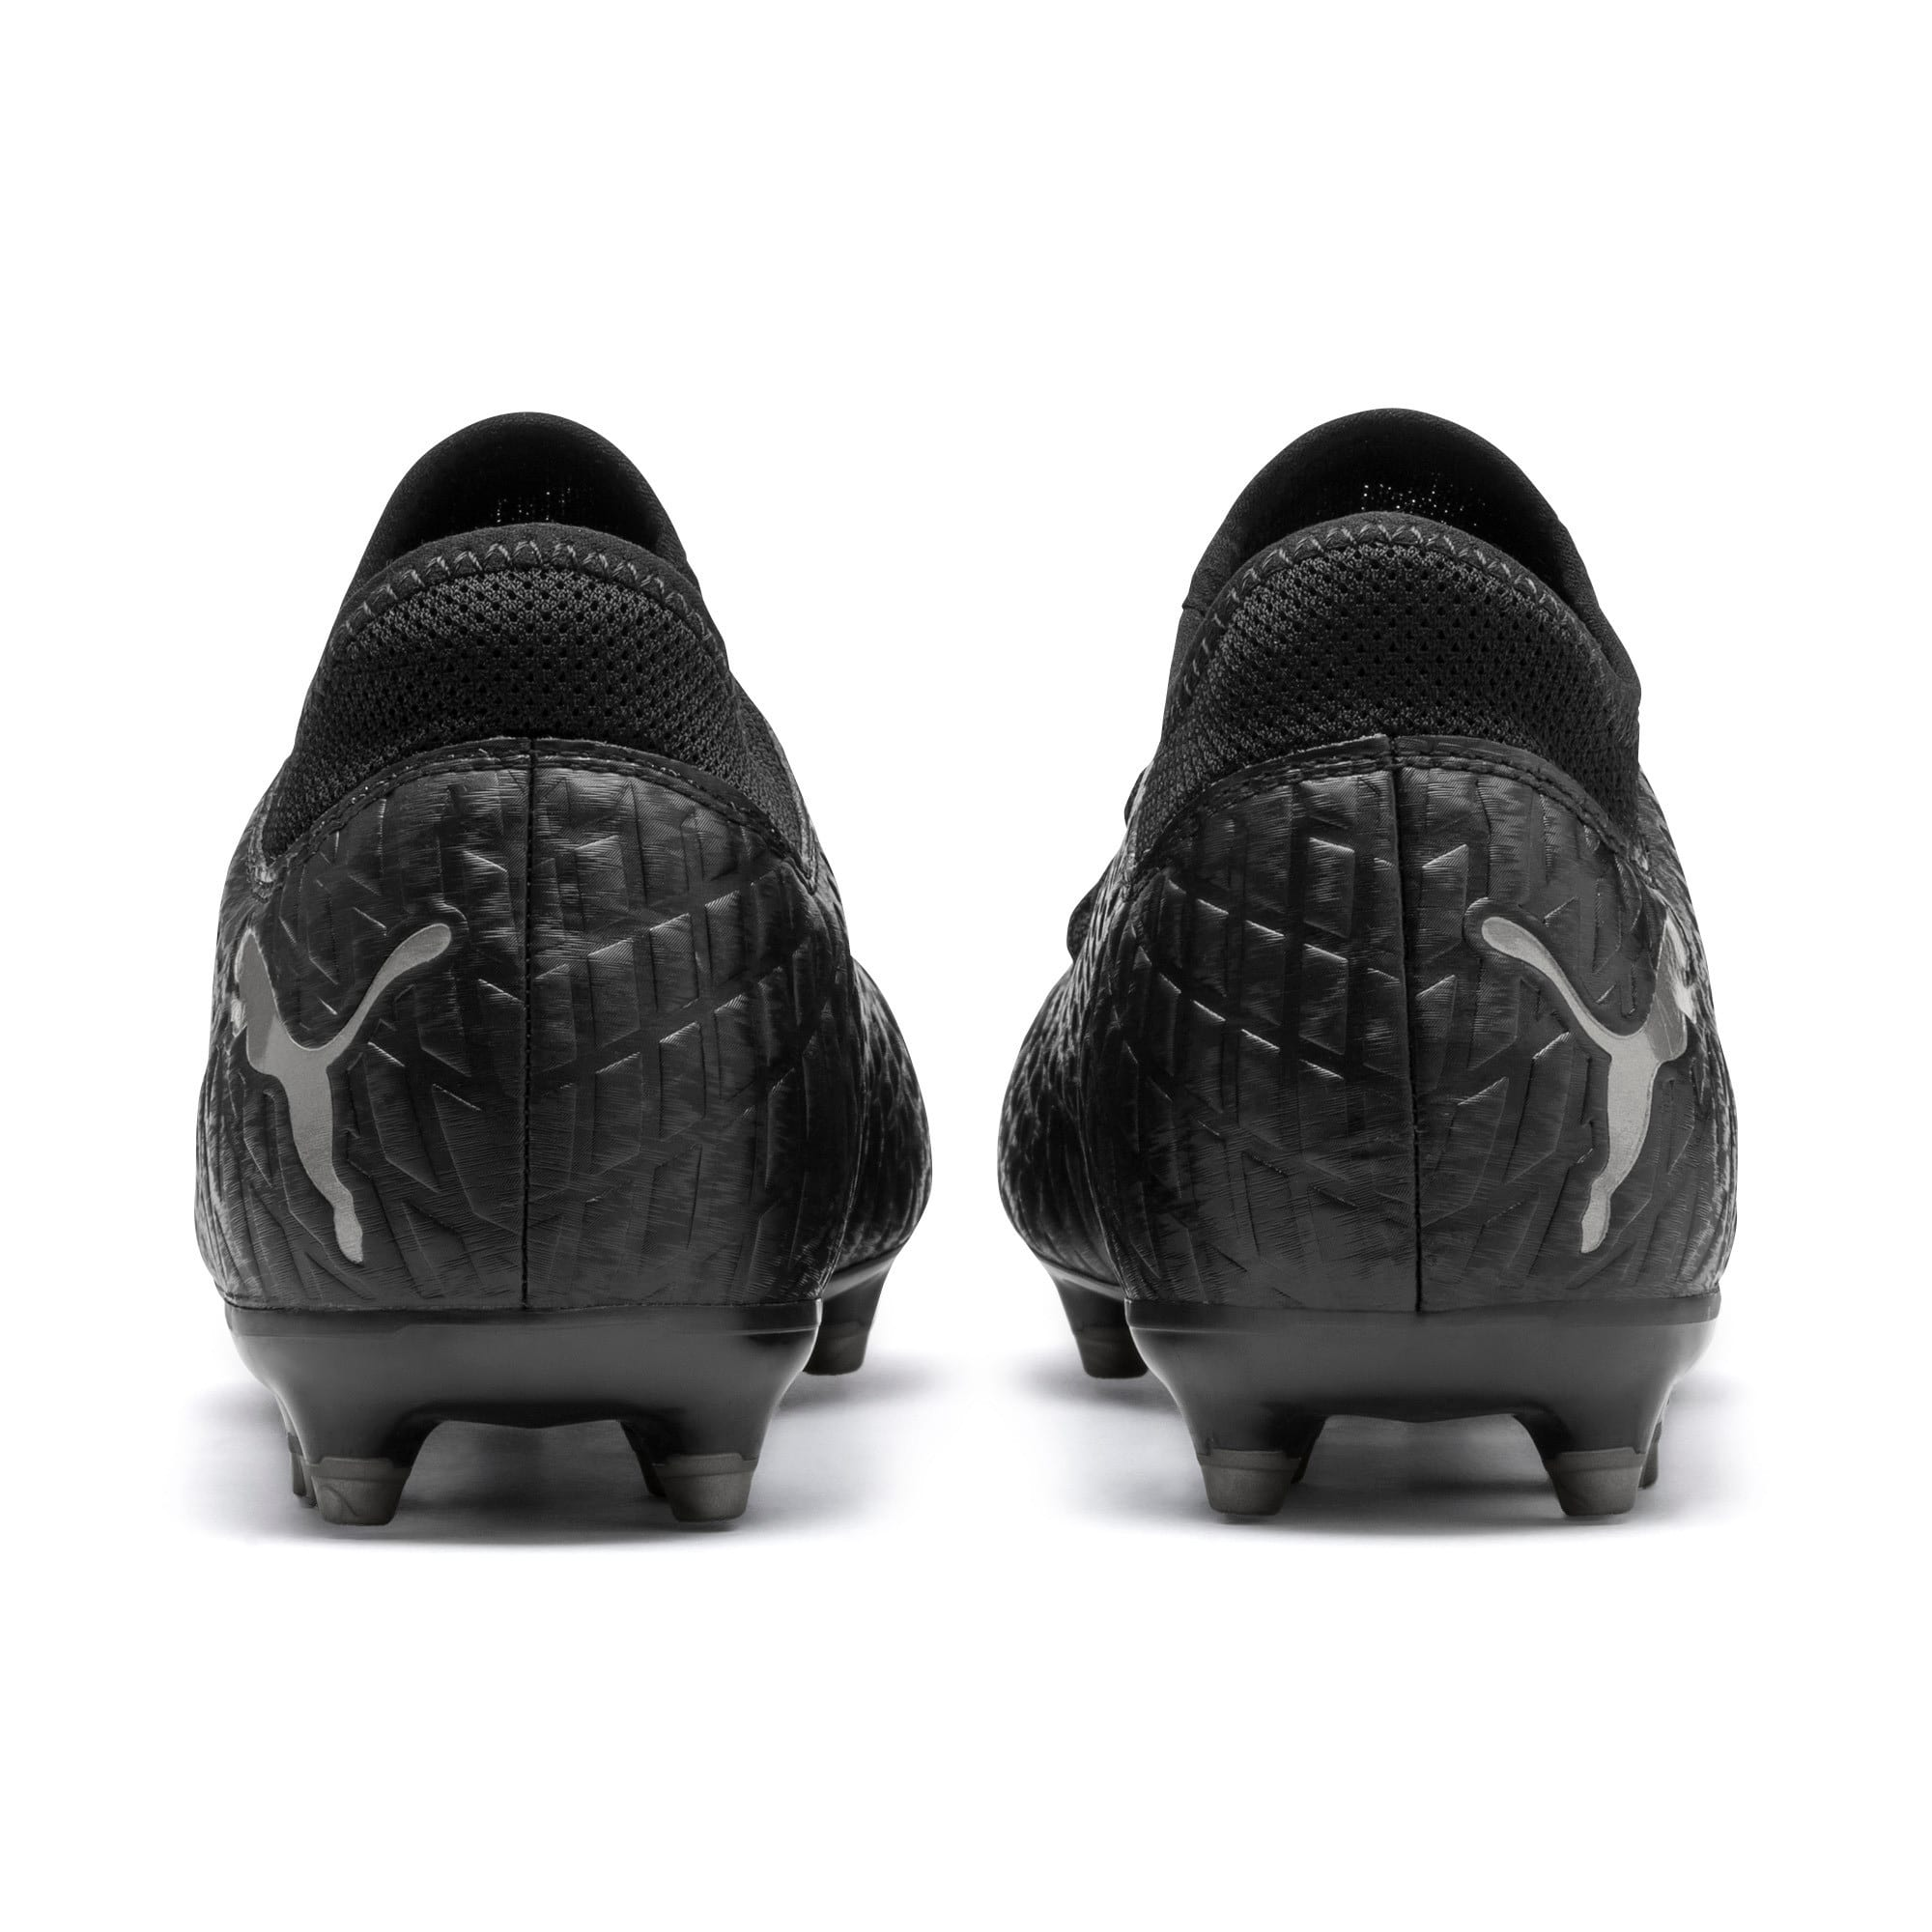 Thumbnail 4 of FUTURE 4.4 FG/AG Men's Football Boots, Black-Black-Puma Aged Silver, medium